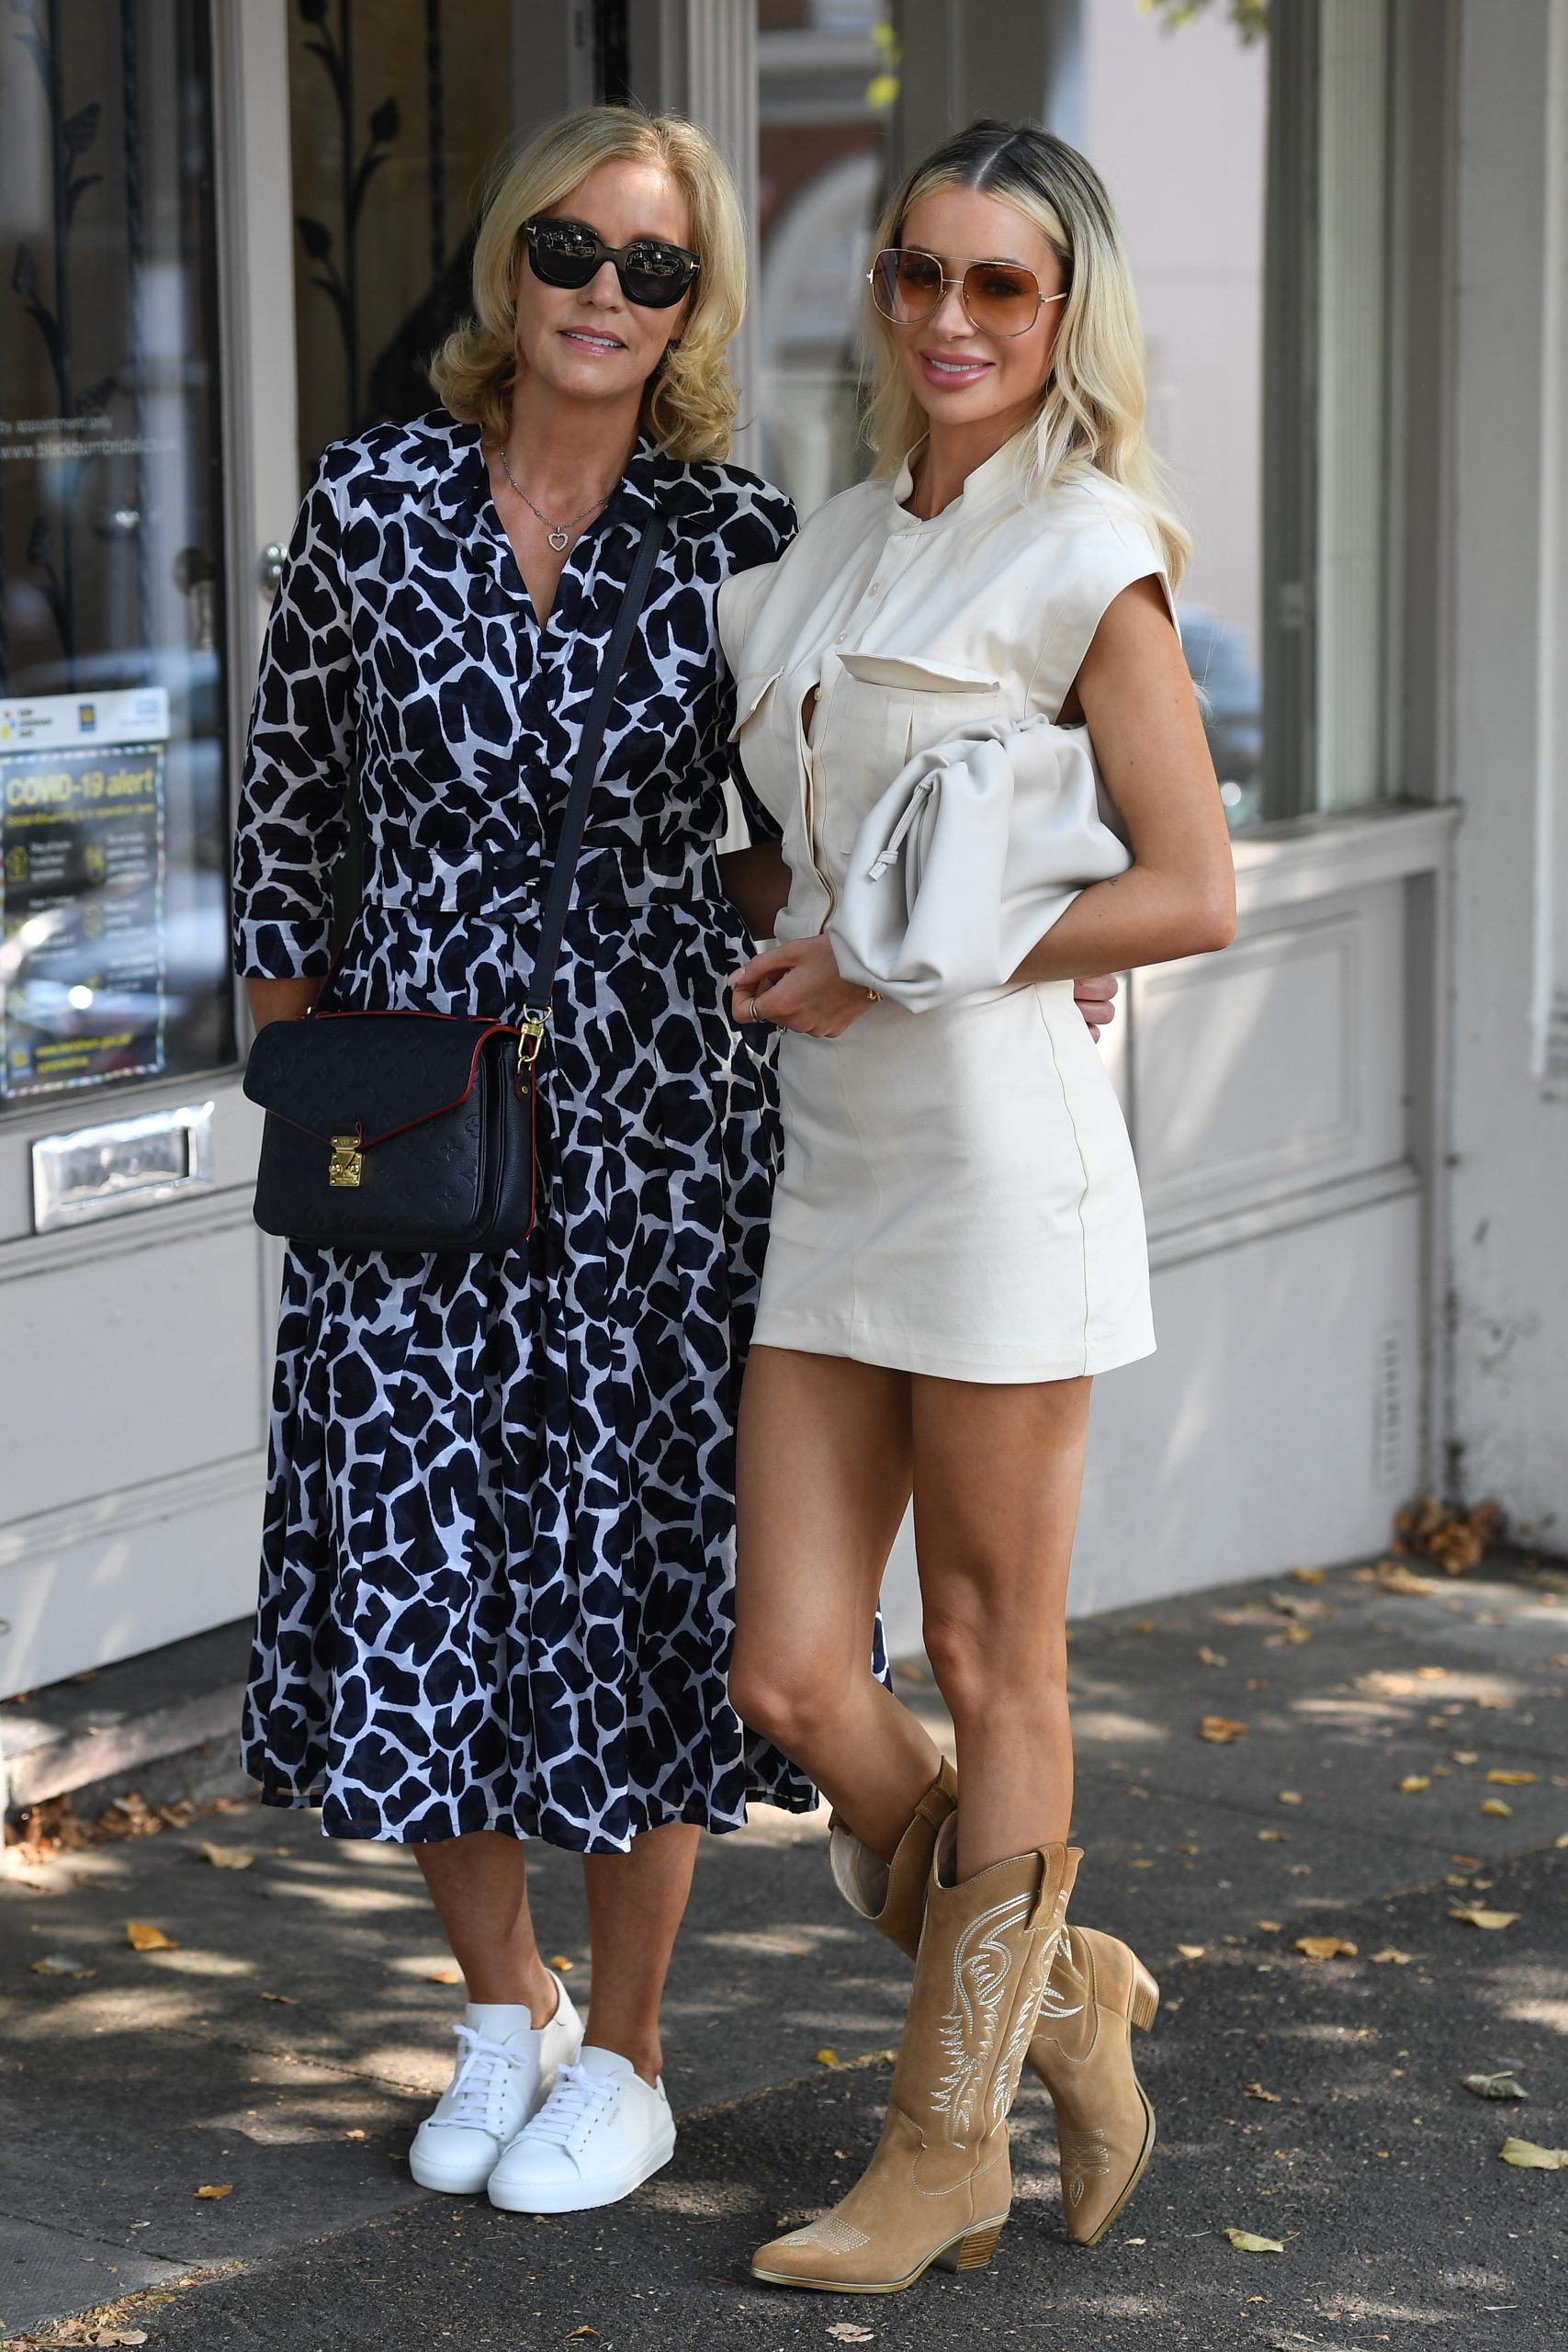 Olivia Attwood 2020 : Olivia Attwood – Leggy in white dress while out in London-11